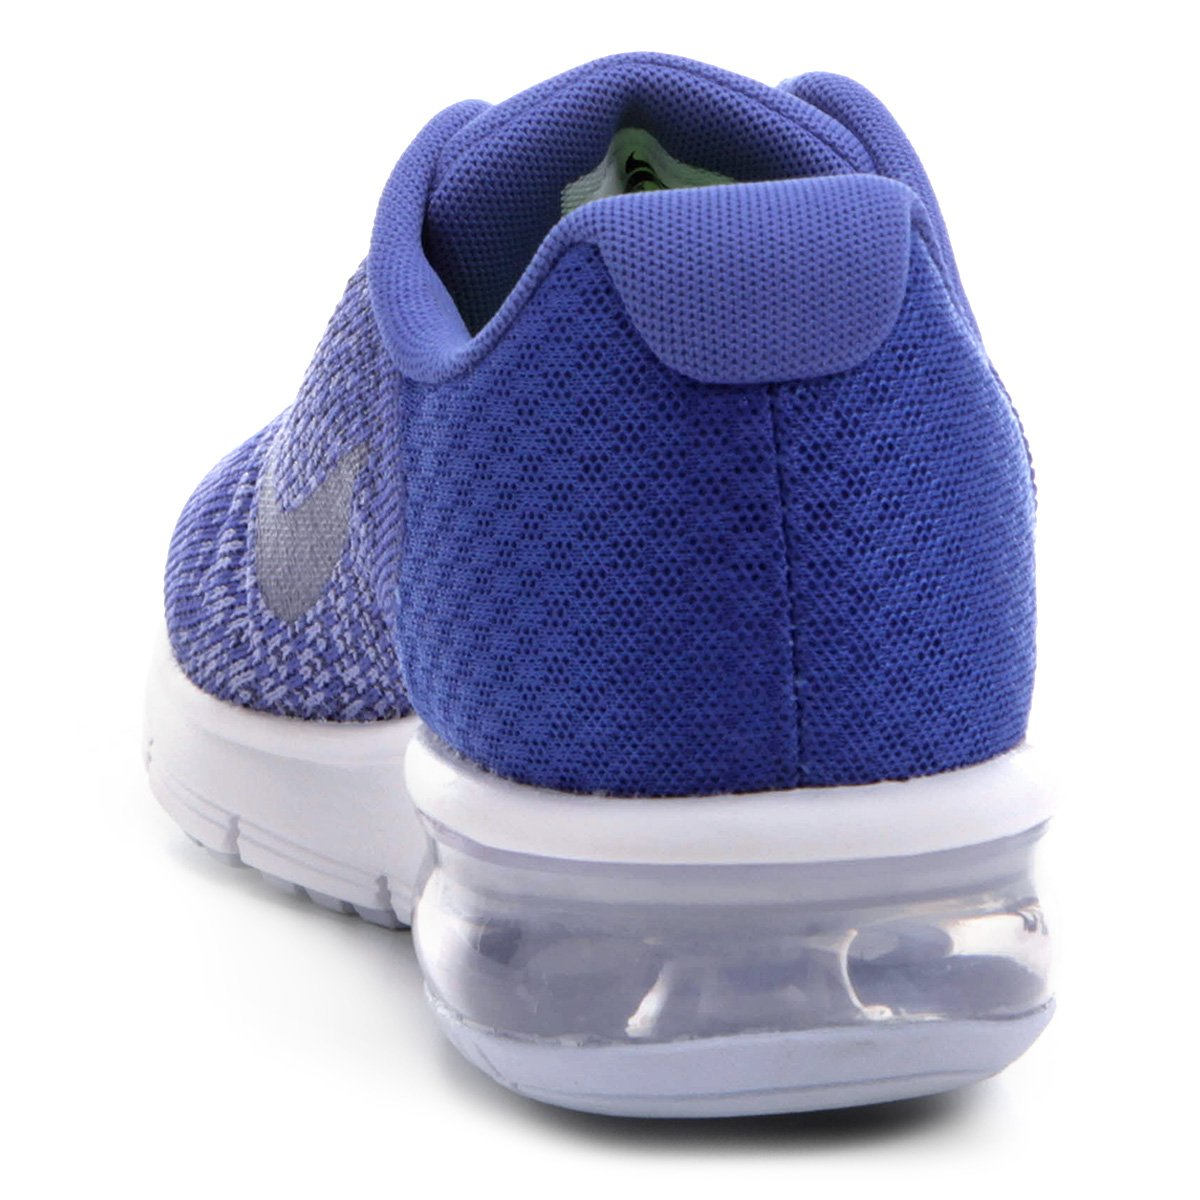 Tênis Nike Air Max Sequent 2 Feminino Azul Royal Shop Timão